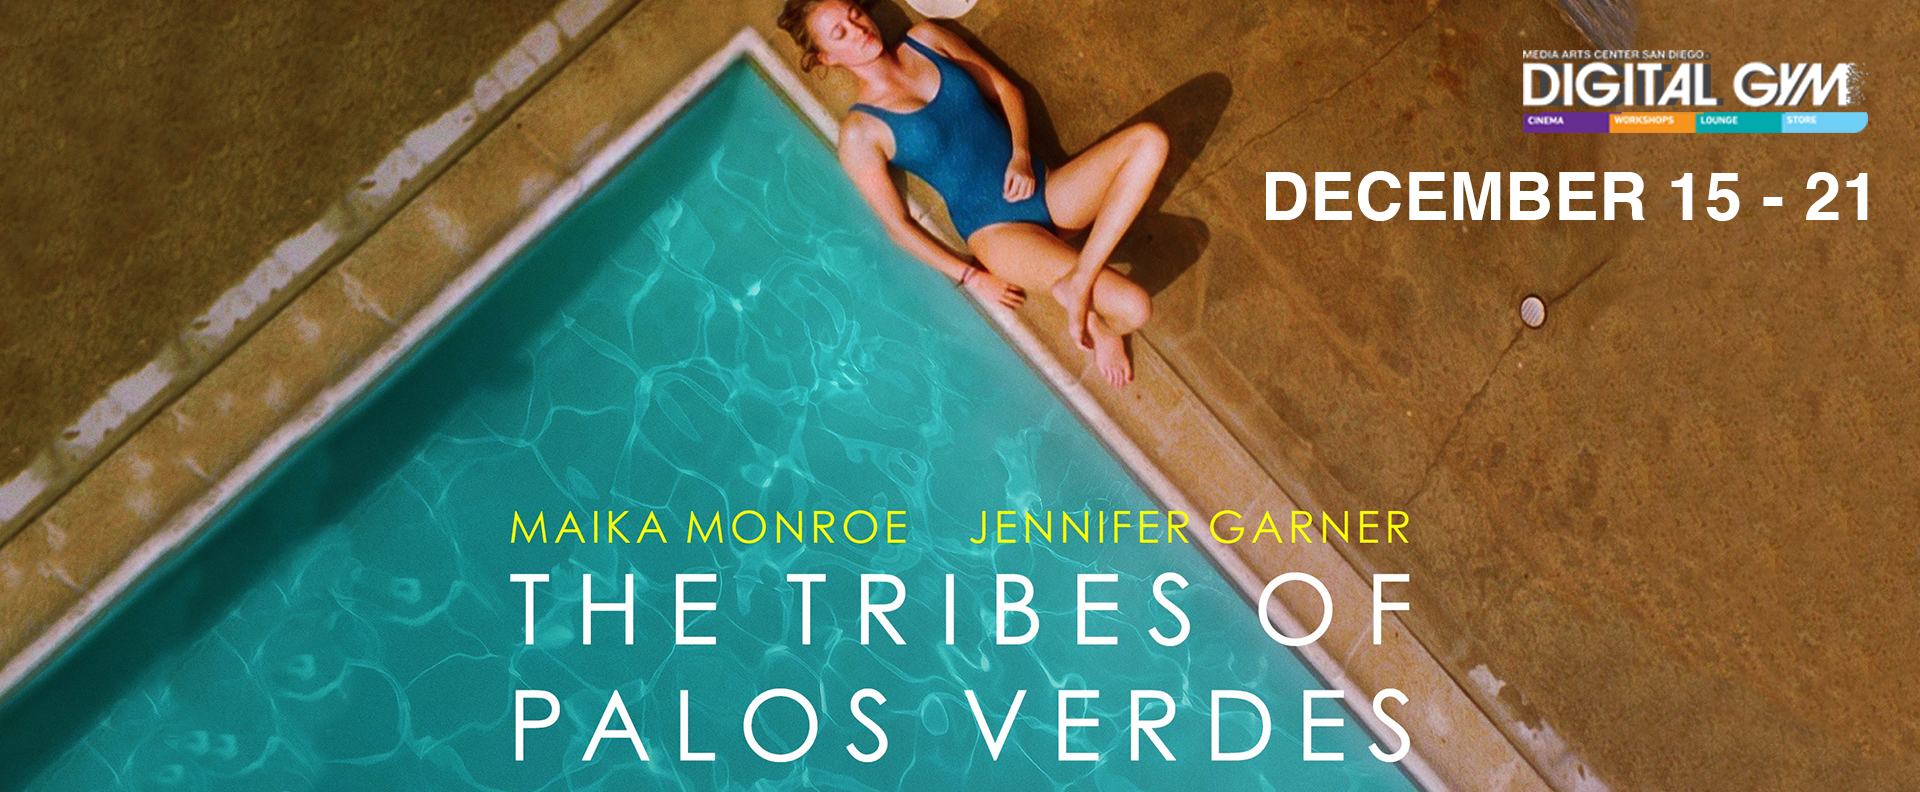 The Tribes of Palos Verdes – starring Jennifer Garner, and Maika Monroe (December 15 – 21)